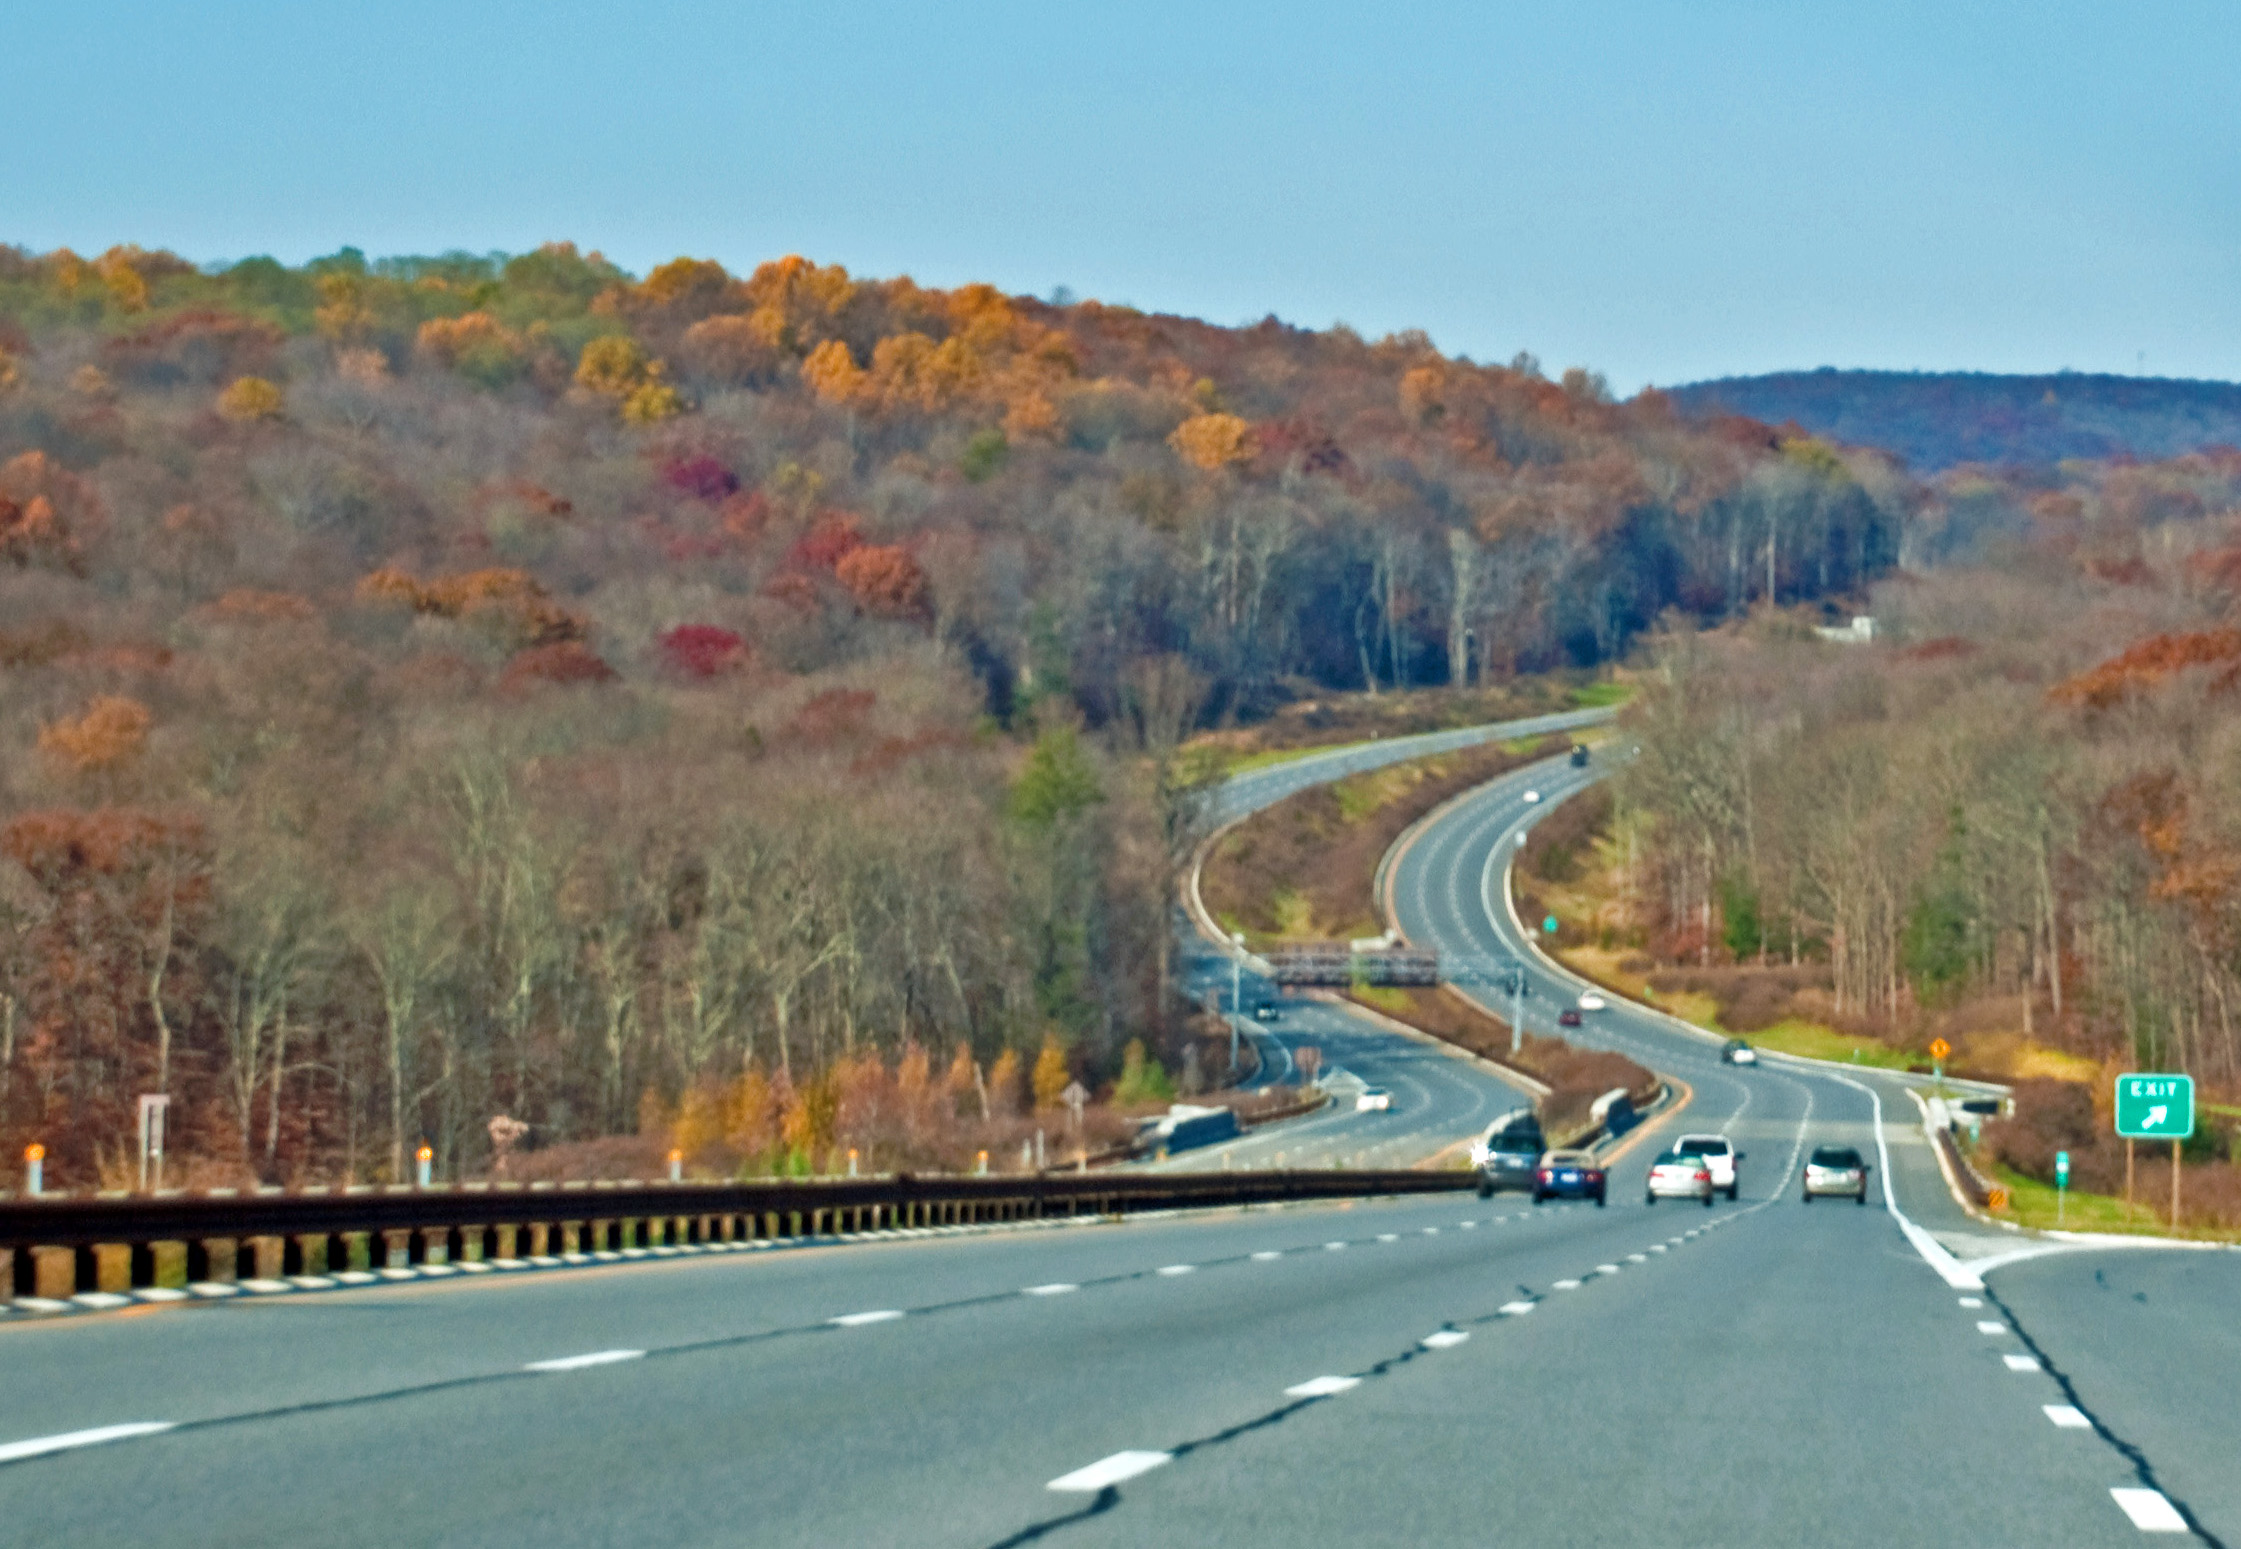 Taconic_State_Parkway_north_of_Bear_Mountain_Parkway_exit,_Yorktown,_NY.jpg